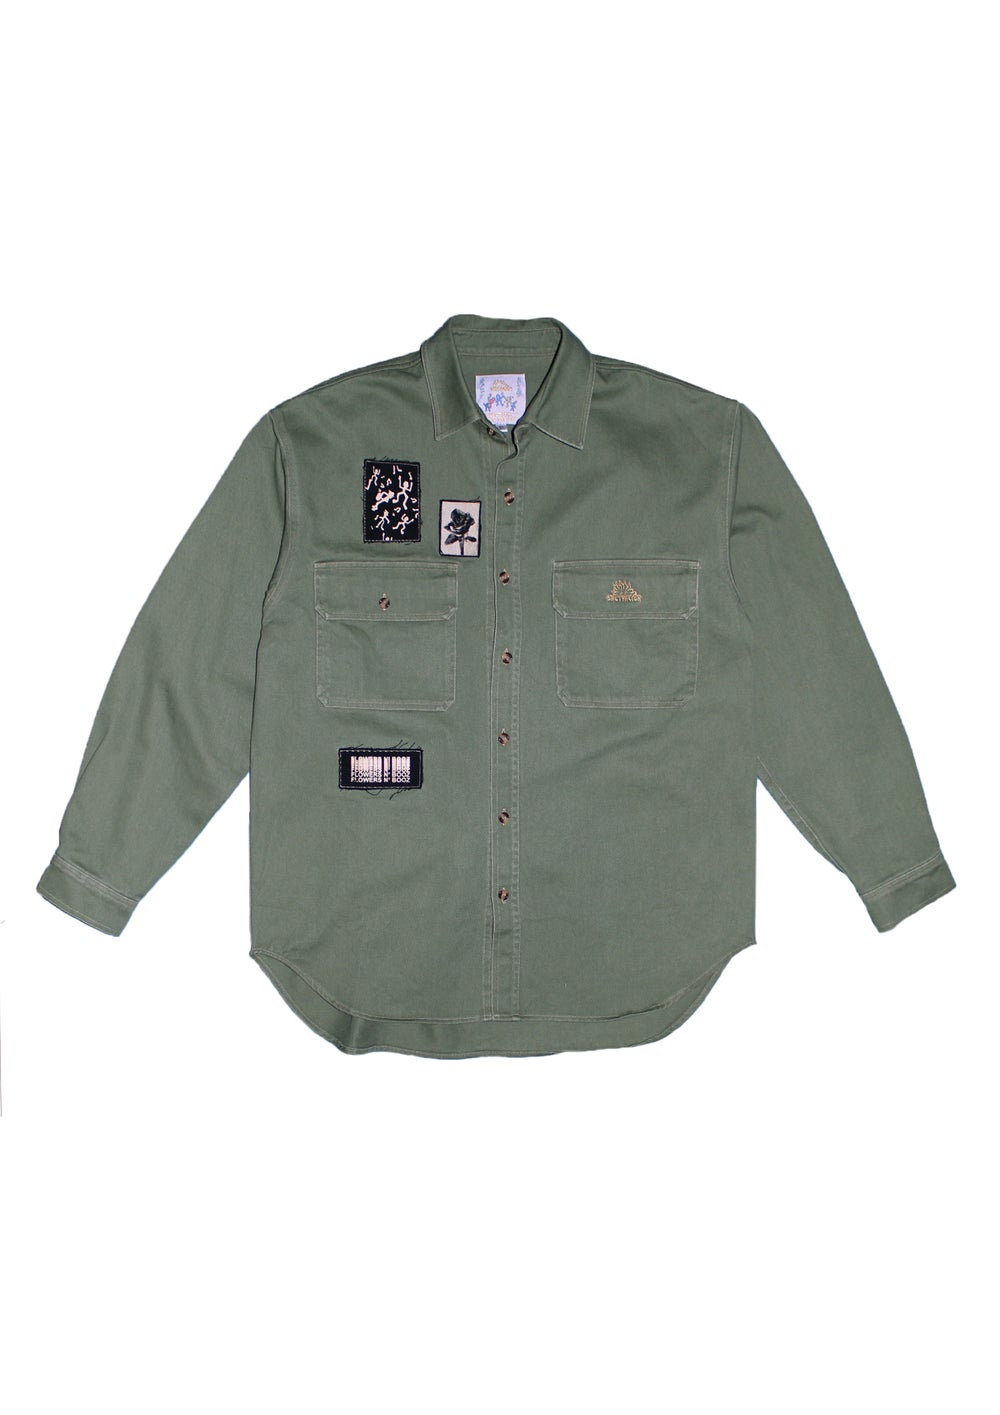 Member Jacket - Trident Green